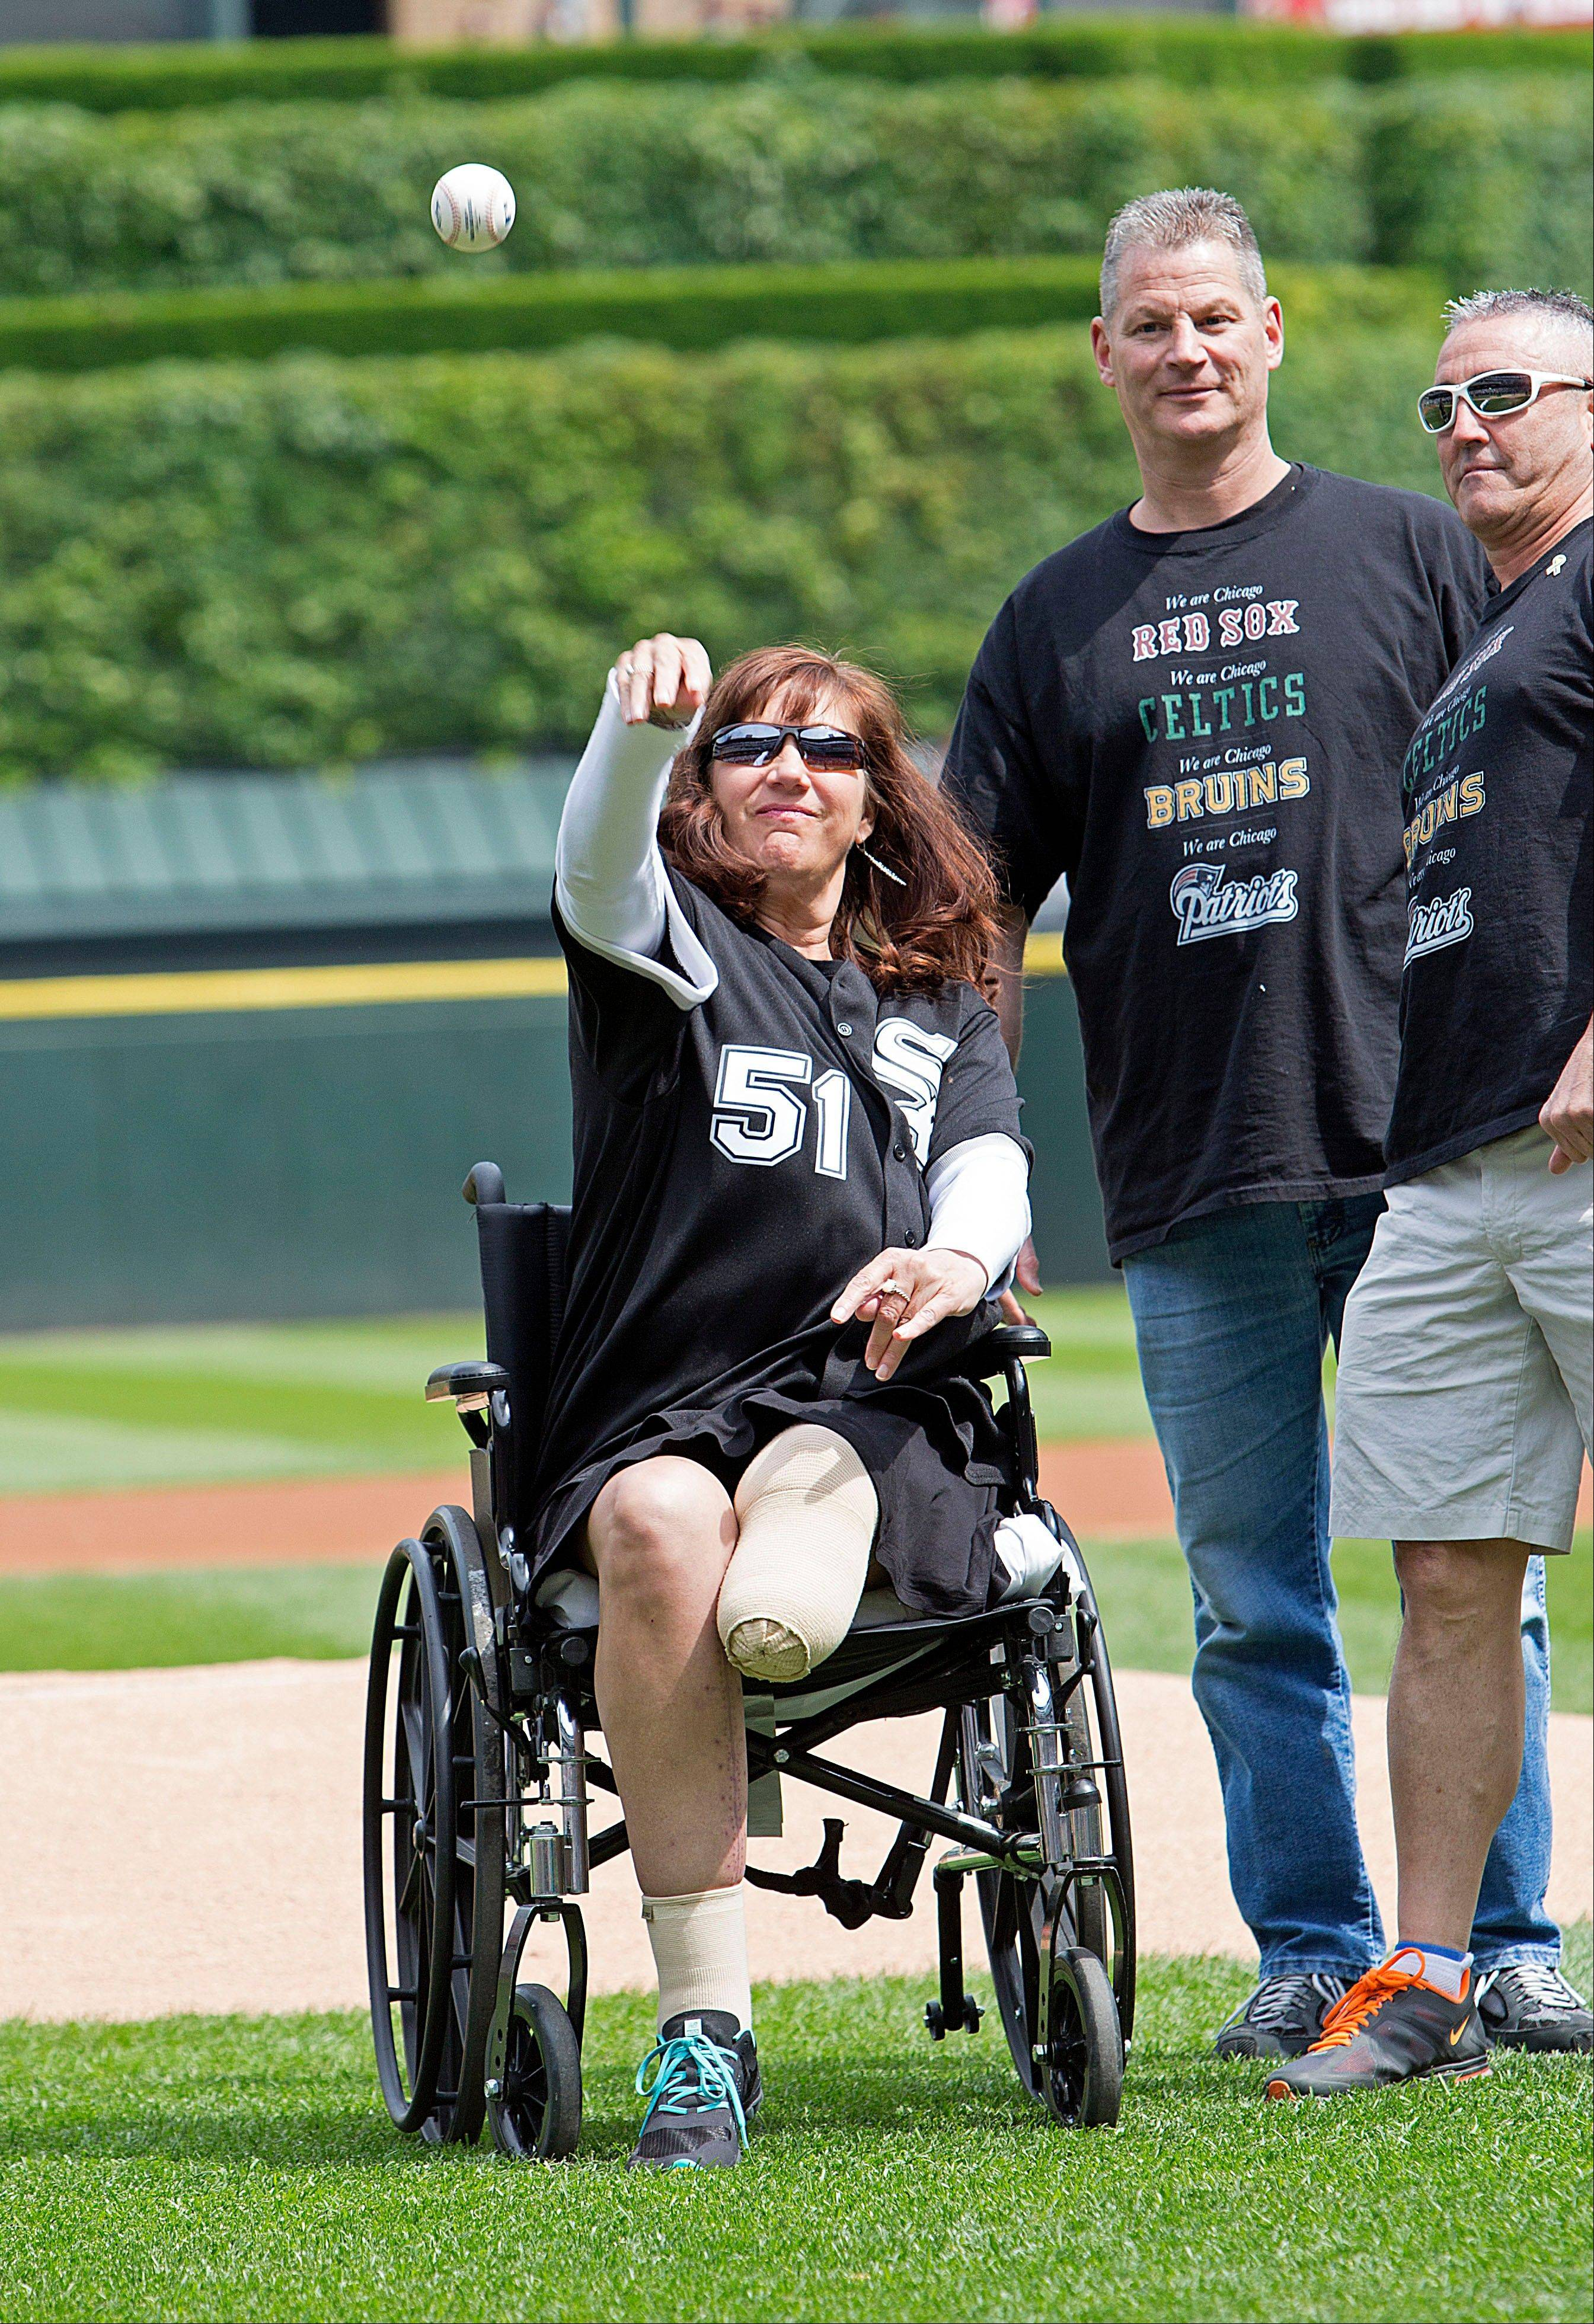 Karen Rand, who lost part of her leg in the Boston Marathon bomb blasts, throws out the ceremonial first pitch before Saturday's game between the White Sox and Athletics at U.s. Cellular Field.